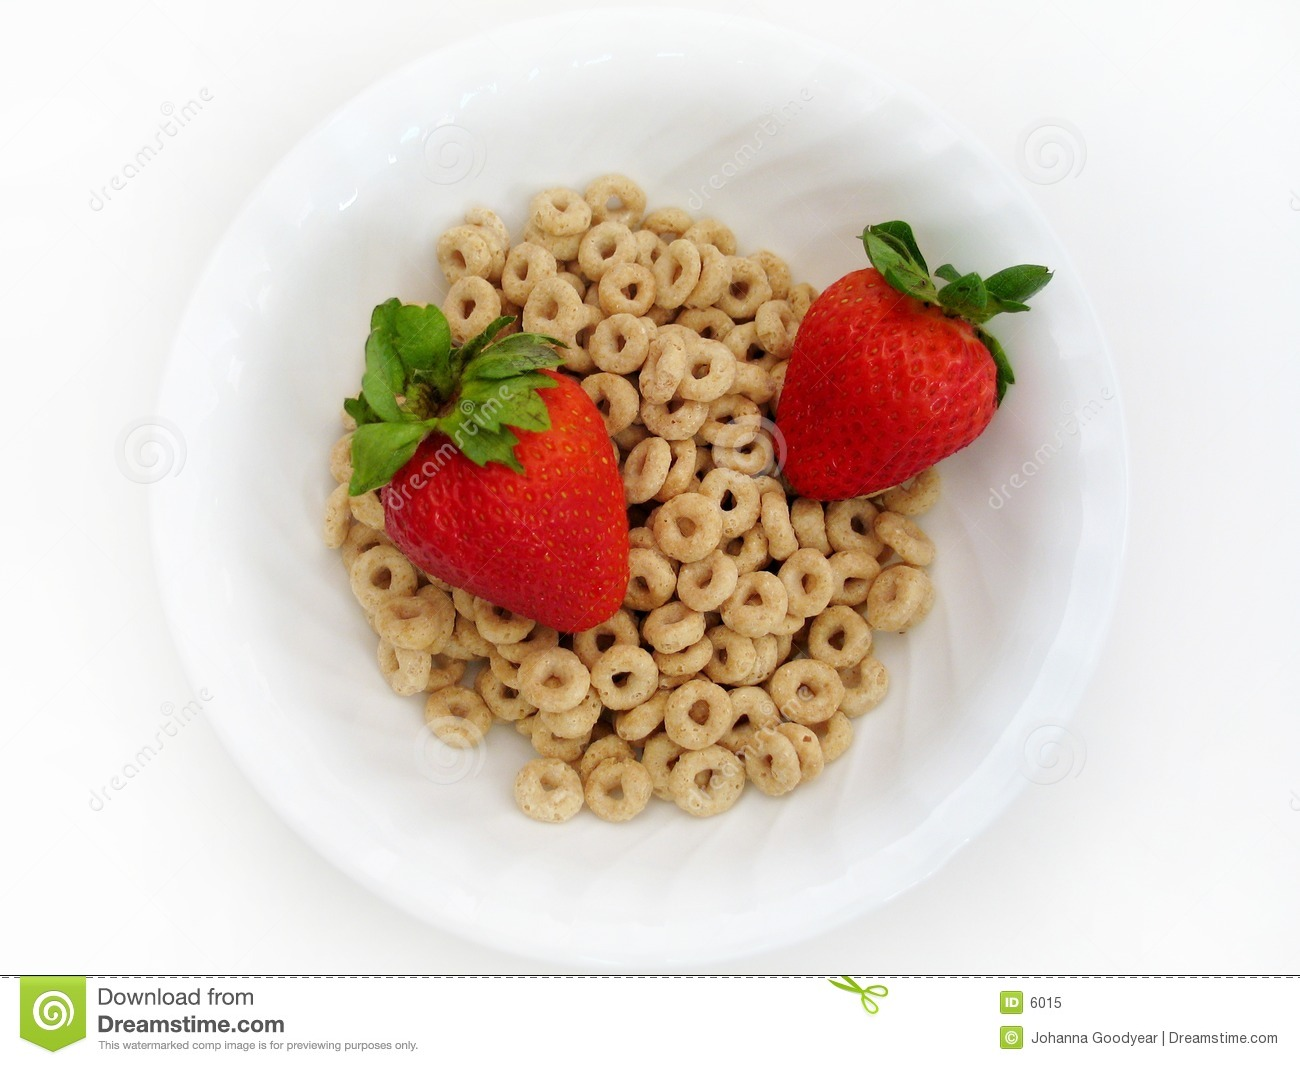 Strawberries and O s